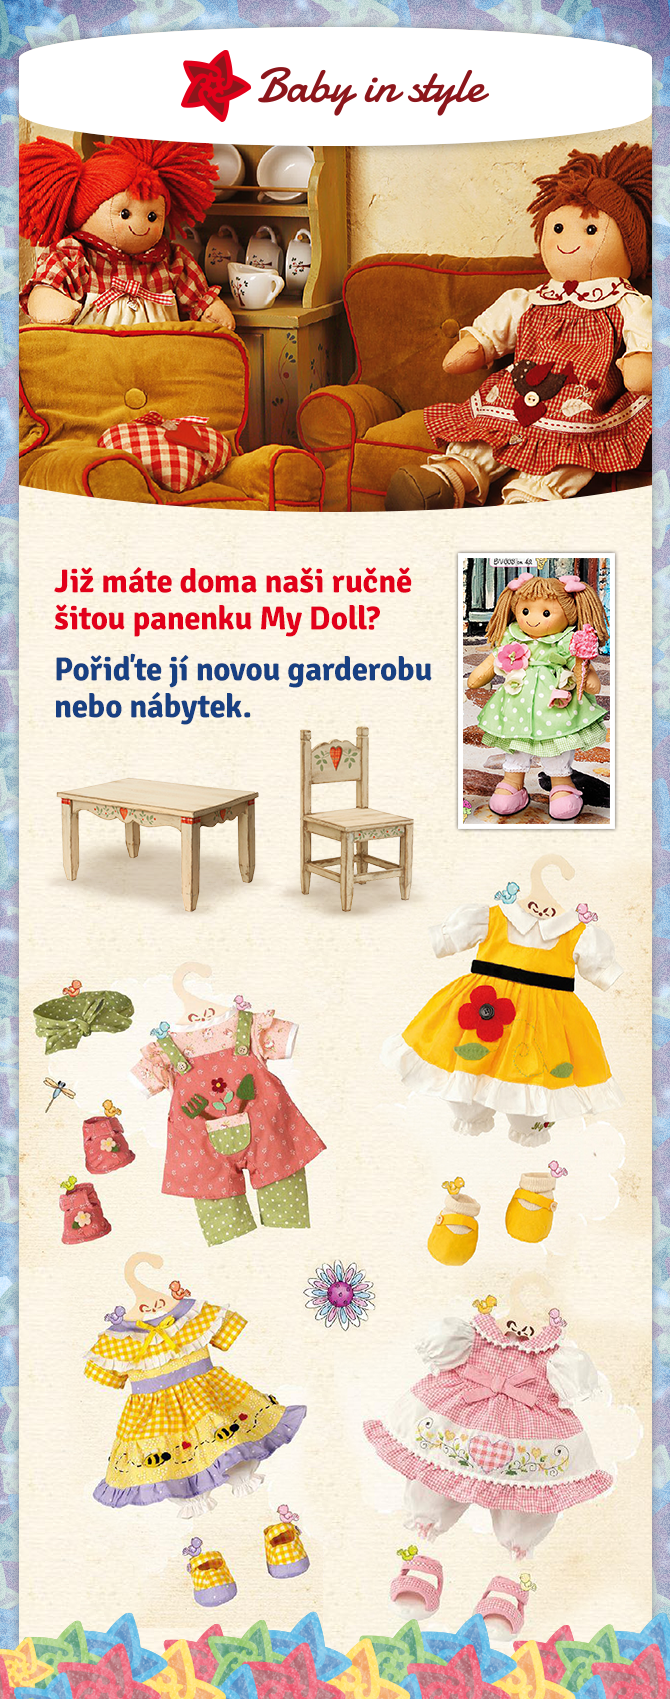 All little girls love to take care of their dolls. The